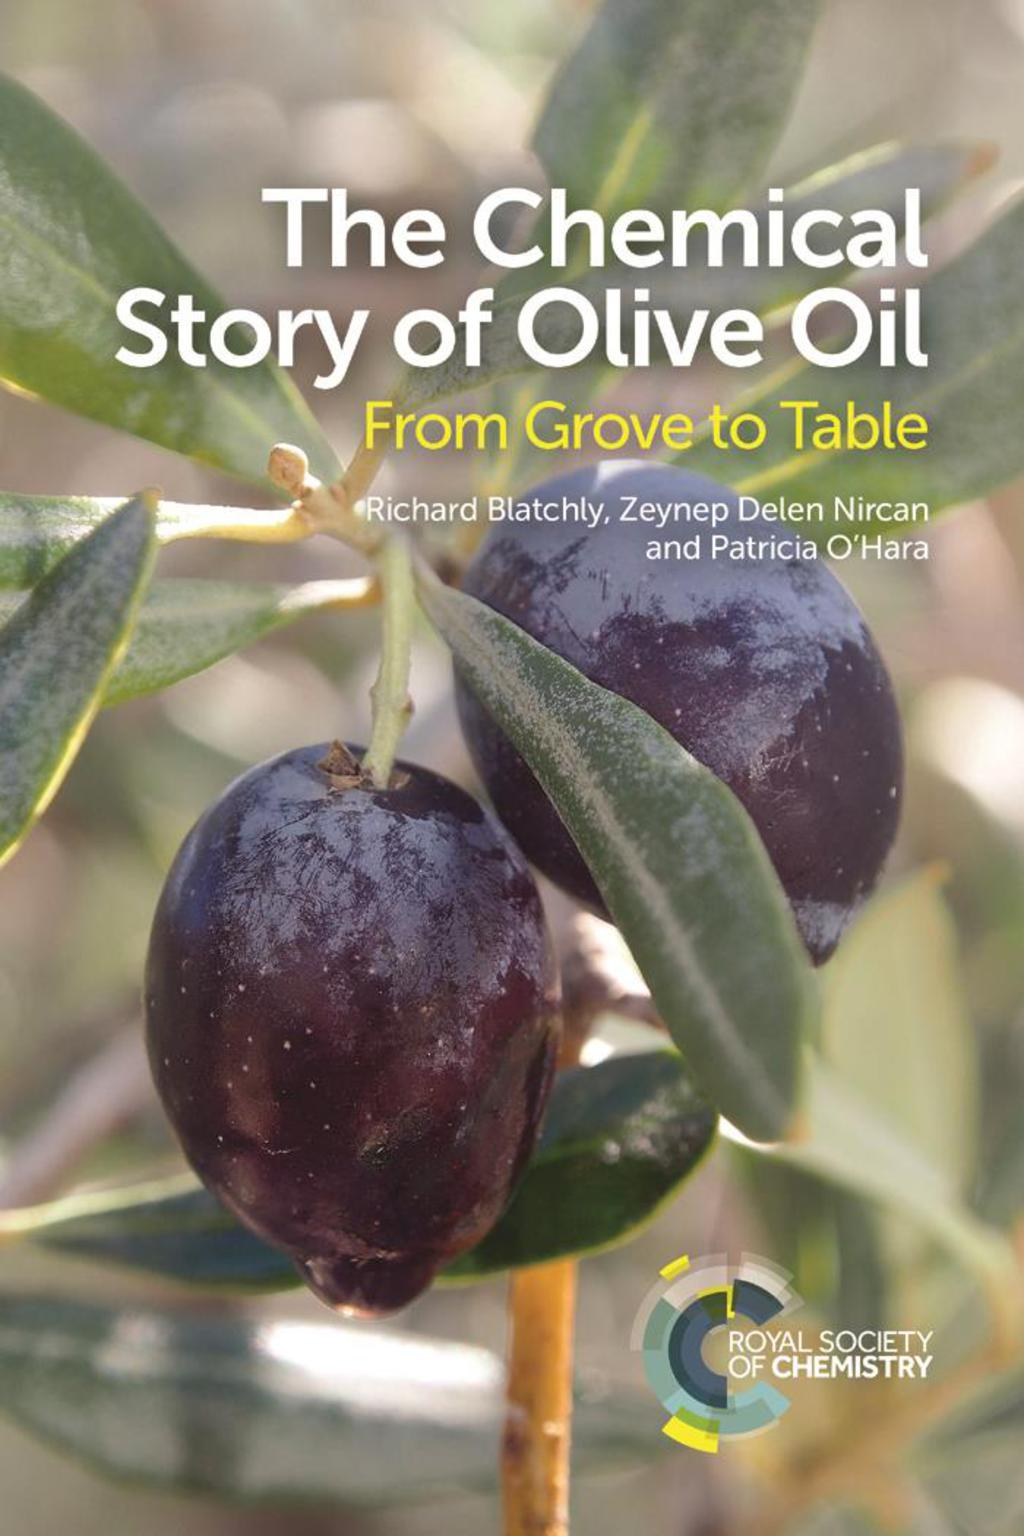 The Chemical Story Of Olive Oil (ebook)